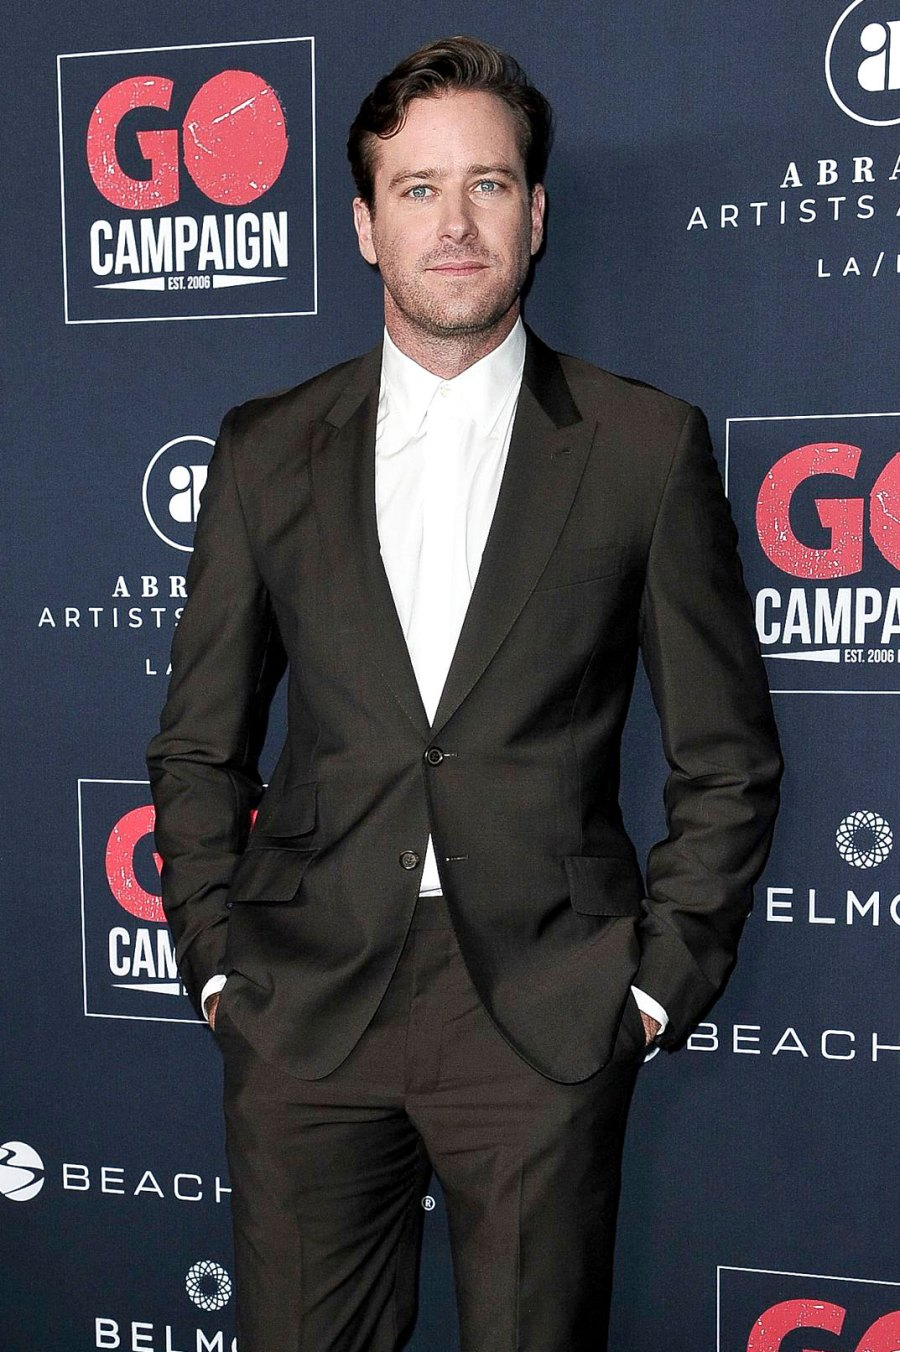 Armie Hammer Most Controversial Moments Over the Years